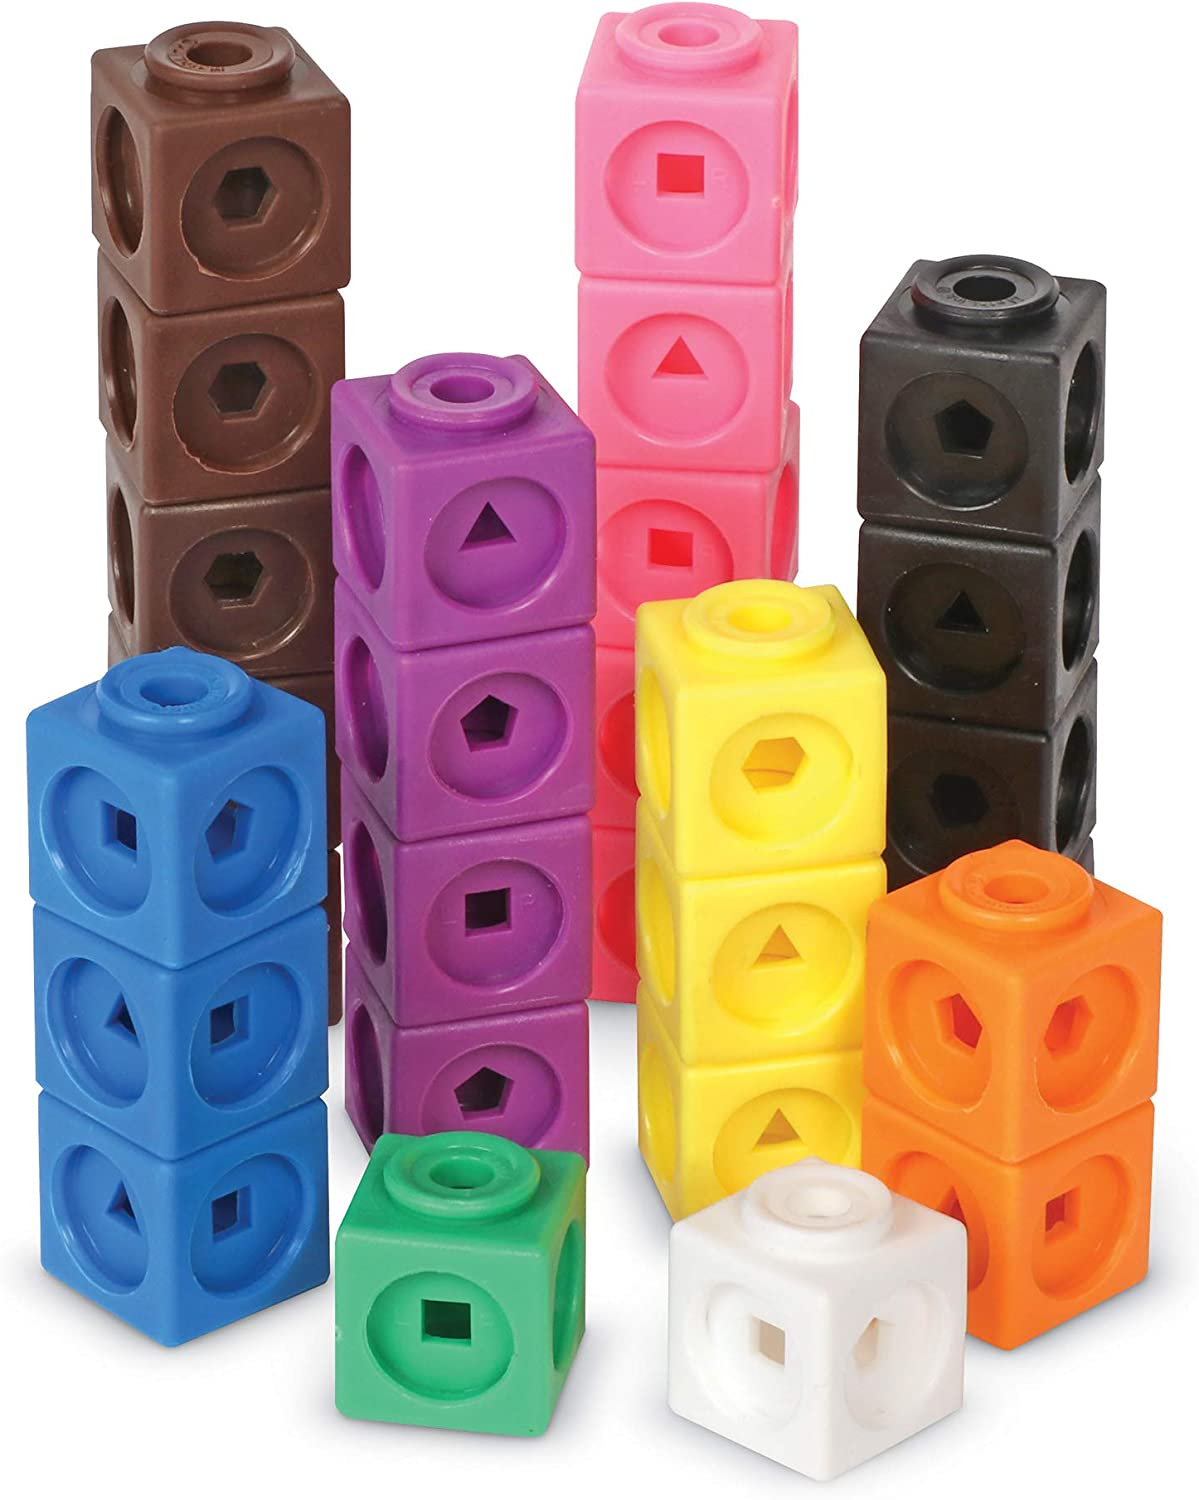 B000URL29Q Learning Resources Mathlink Cubes, Educational Counting Toy, Math Cubes, Patterning Activities, Set of 1000 Cubes, Grades K+, Ages 4+ 715lVKMjOvL